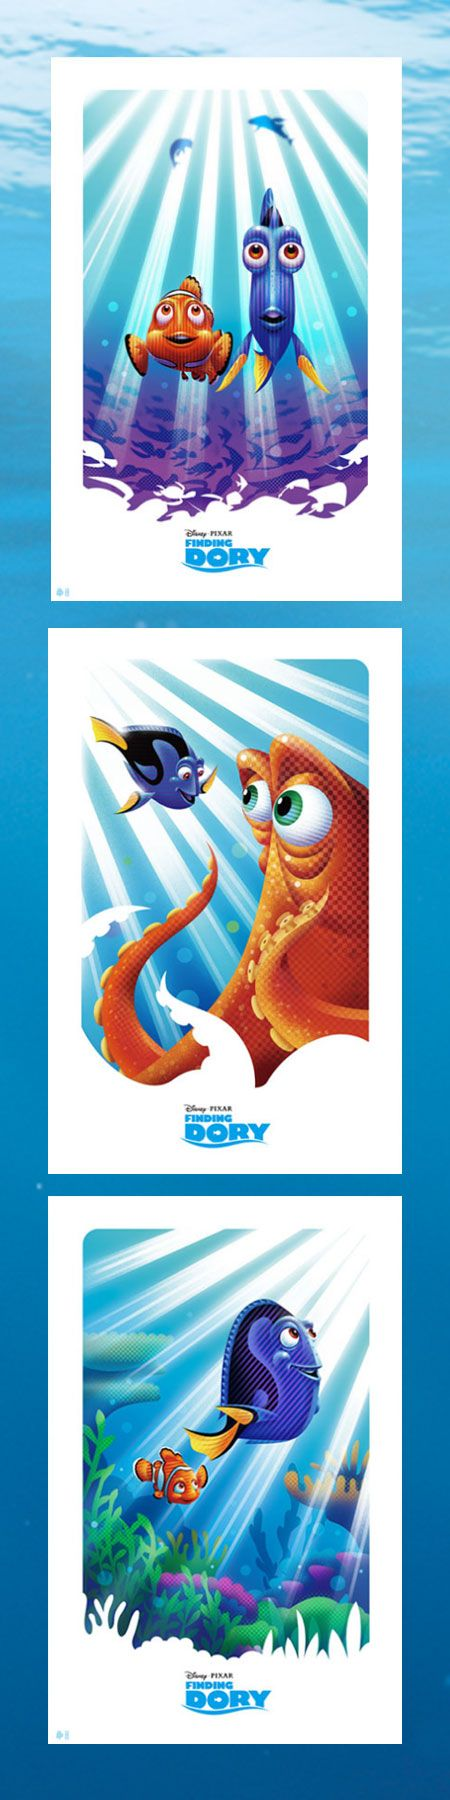 Fin-omenal news! Finding Dory is now playing! Find out how to get a FREE* Finding Dory poster when you link your account to Fandango VIP.  Want more? You can complete the set of three posters for only $17.99 (includes S&P).  Details: http://www.disneymovierewards.go.com/promotions/special-offers/FindingDory?cmp=DMR|PIN|06172016|GWP|FindingDory (* Plus $3.75 SHIPPING AND PROCESSING. Offer good in the U.S. only. Offer expires 7/15/16)